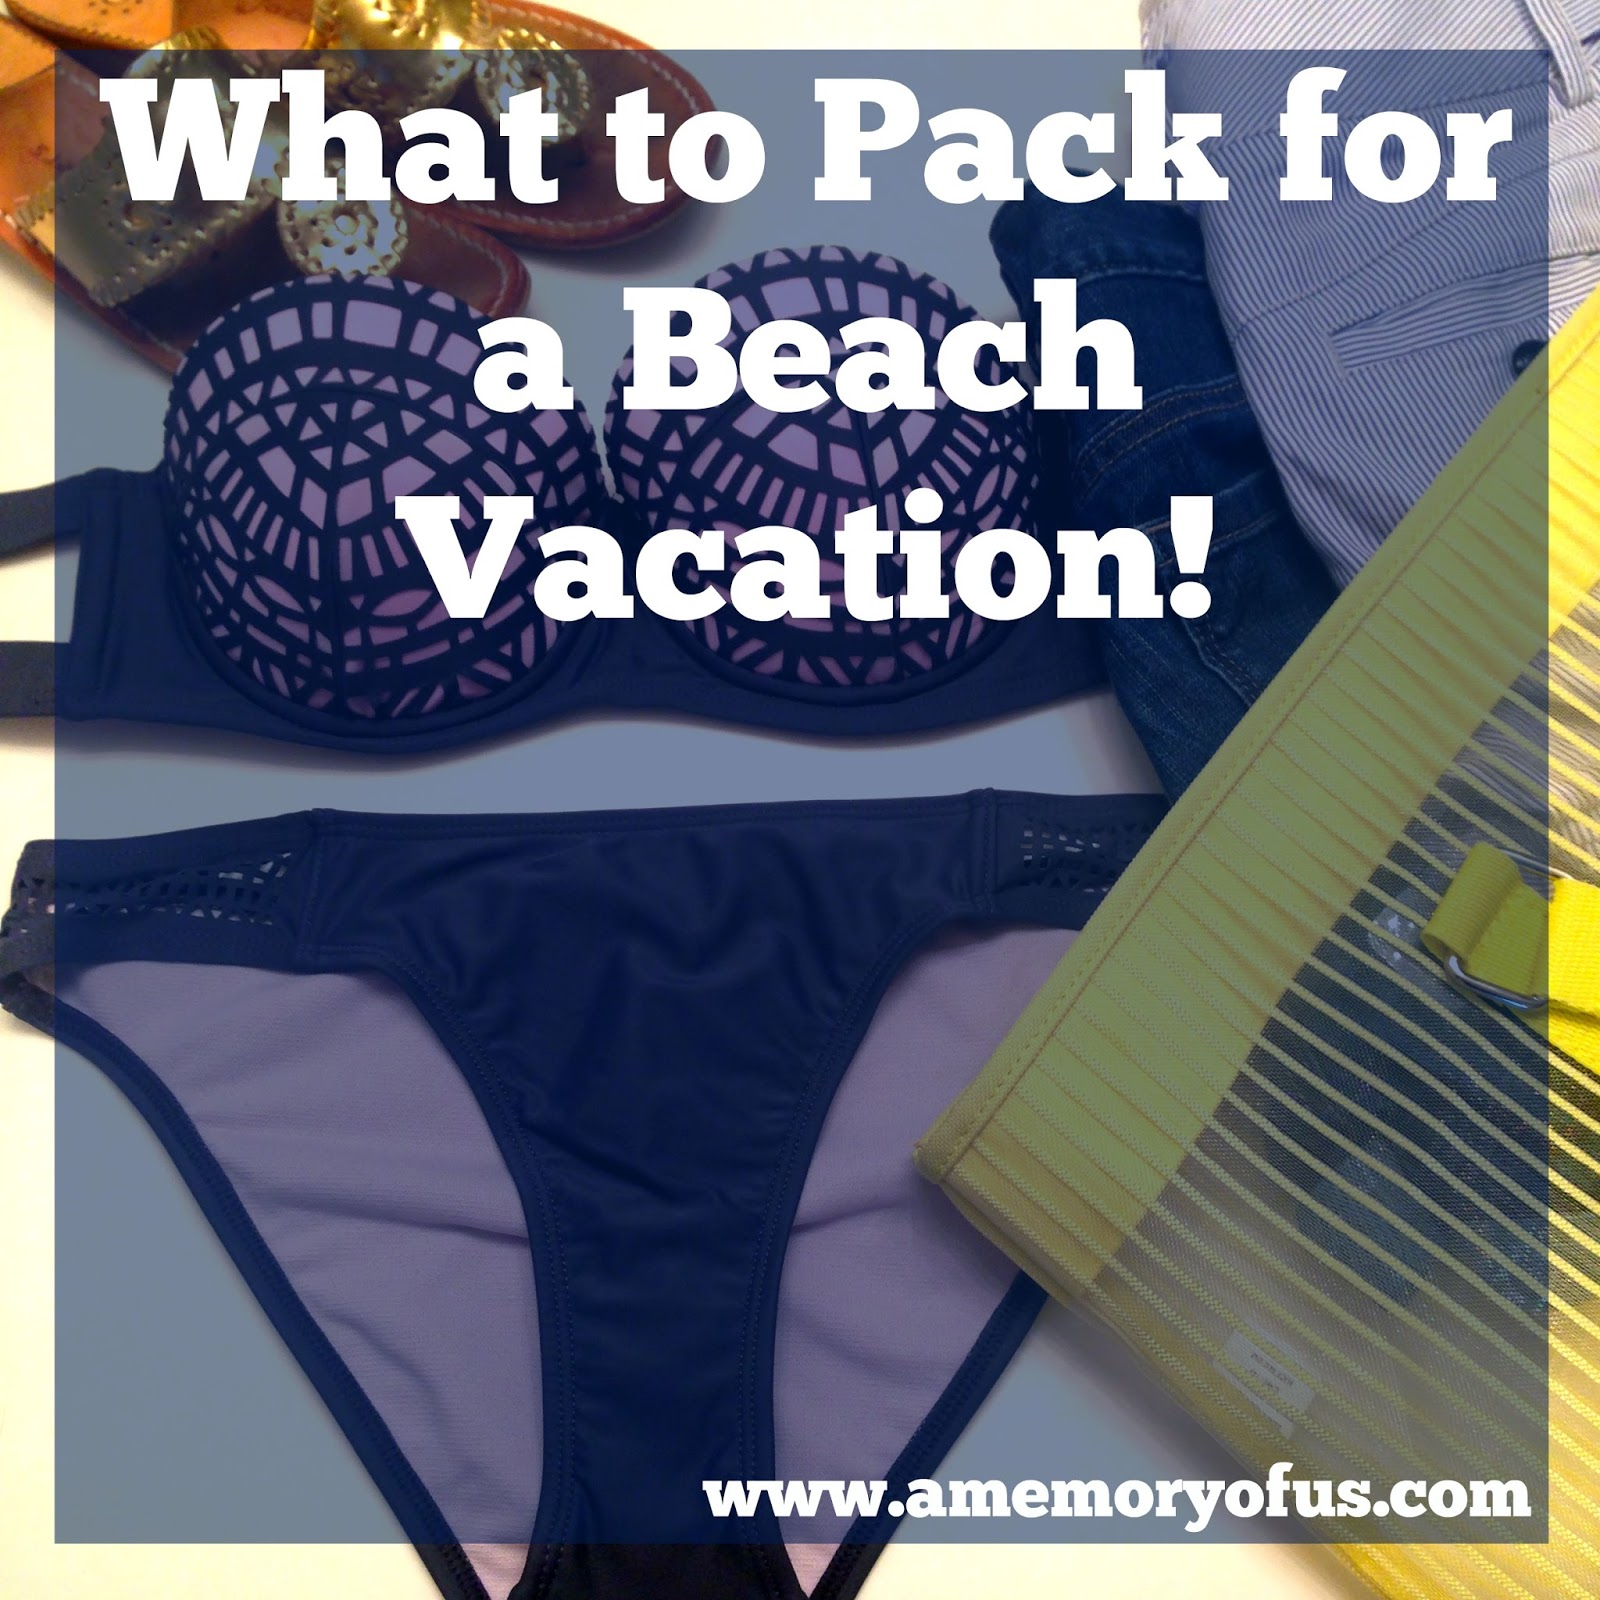 Kansas Weekend Couples Getaway: A Memory Of Us: What To Pack For A Beach Vacation